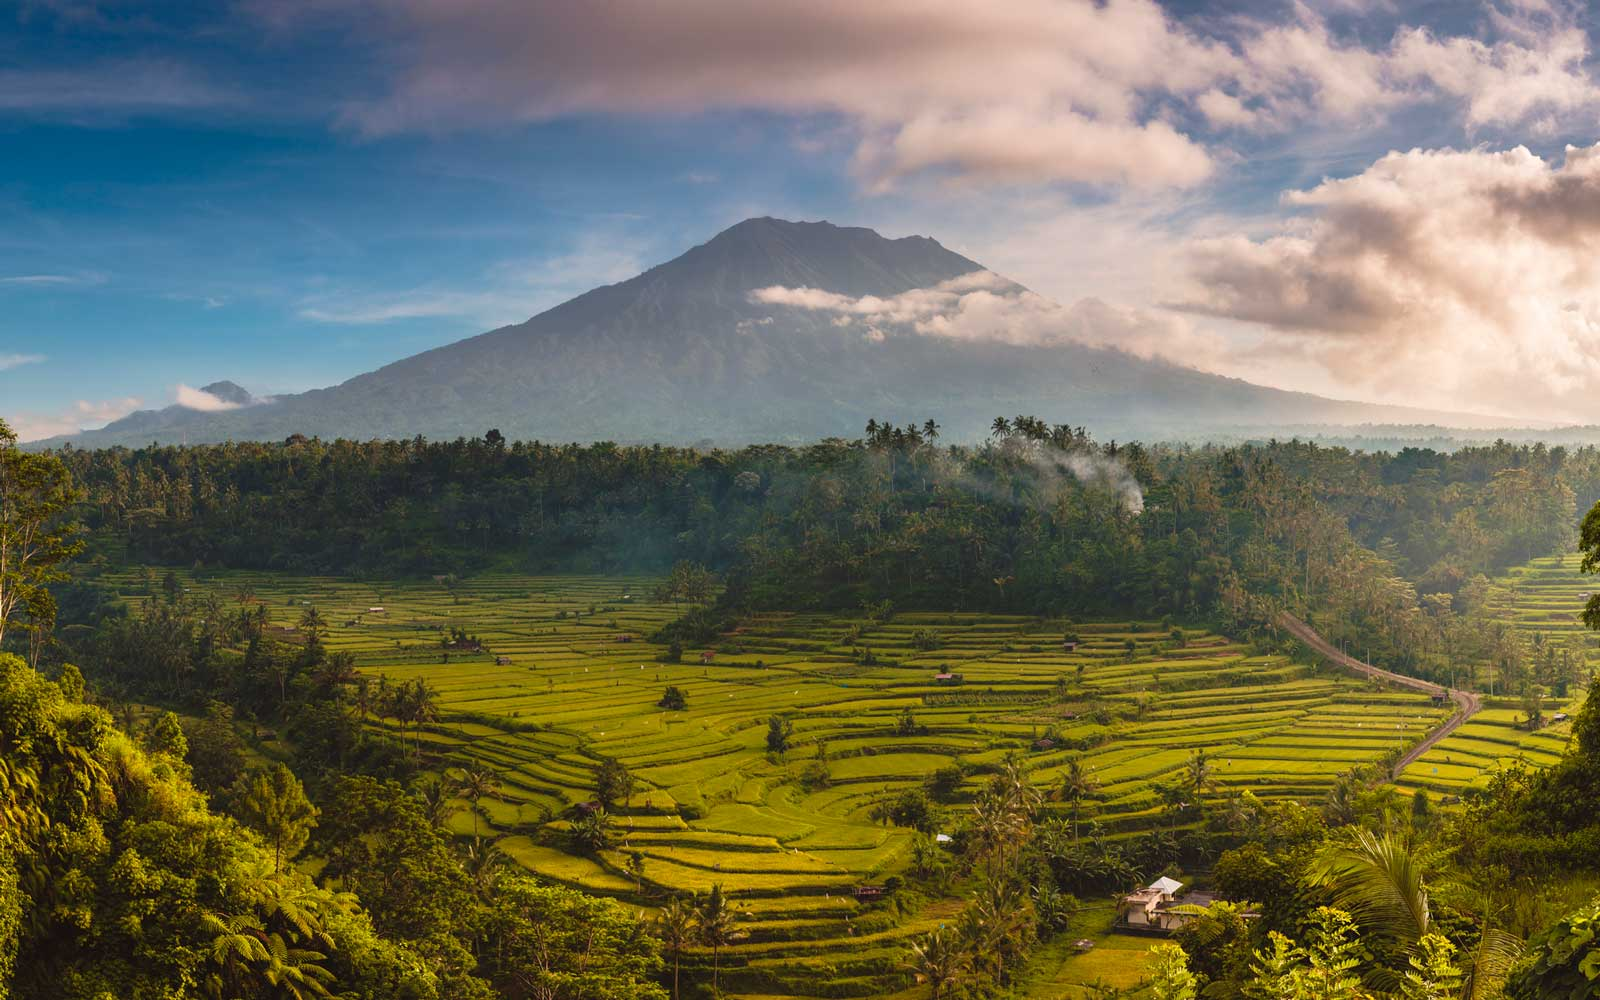 Mount Agung (Gunung Agung) and the Sidemen valley. Bali